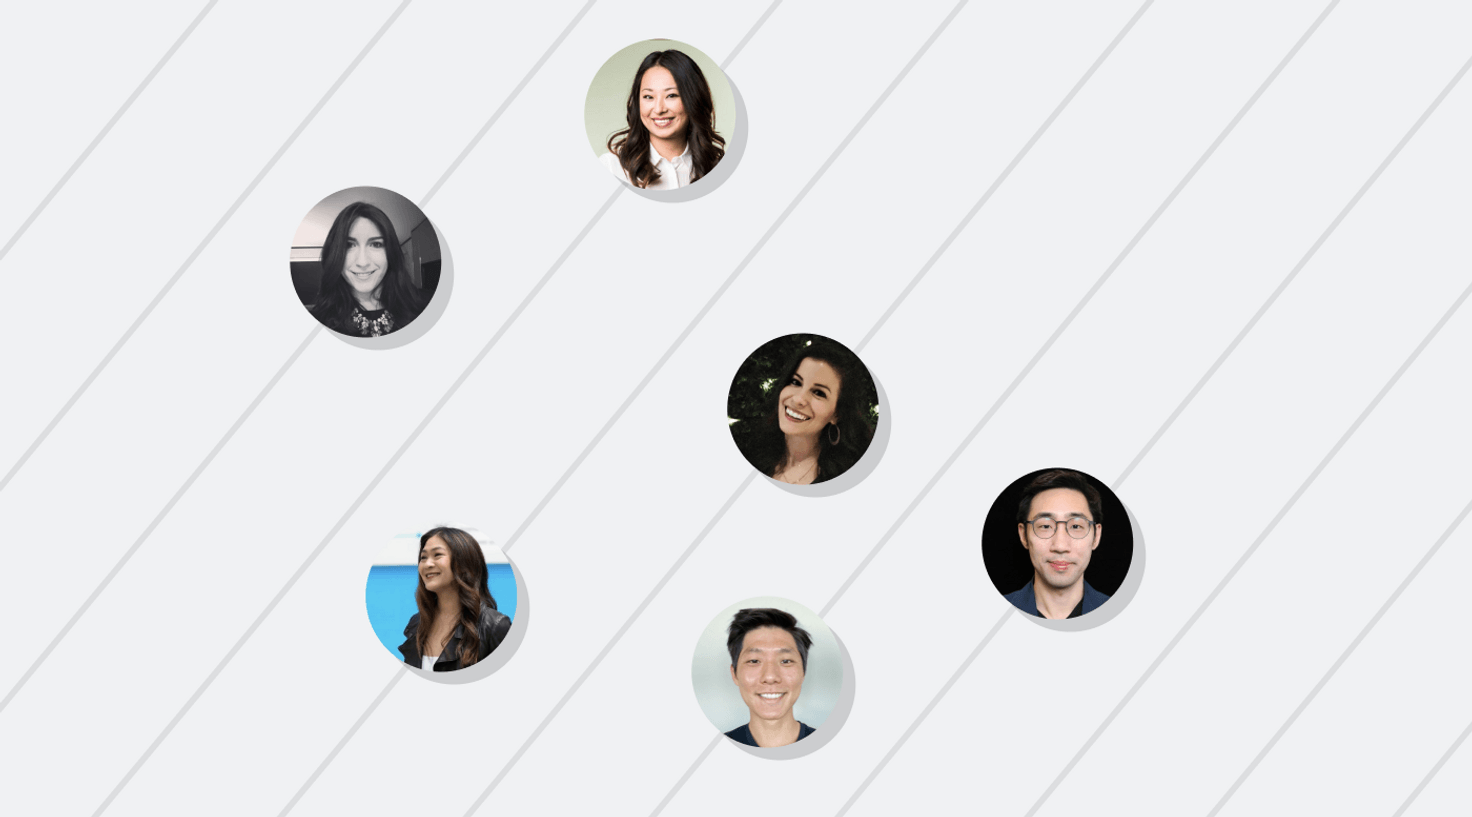 Six small circular portraits of people on a light grey background